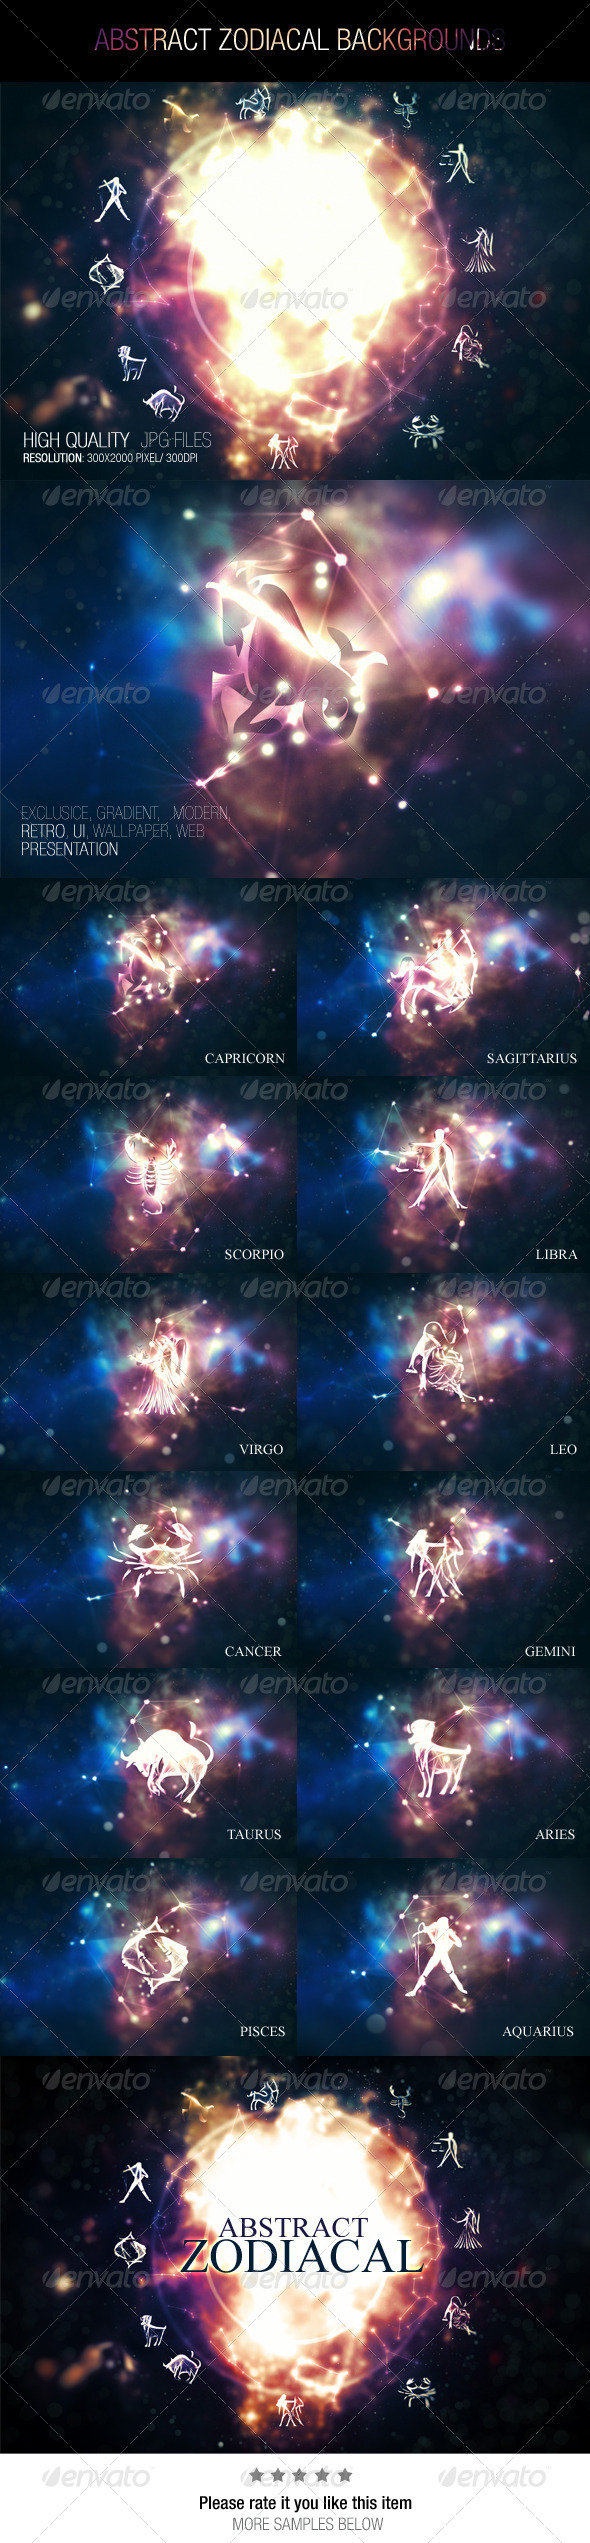 GraphicRiver Abstract Zodiacal Backgrounds 7767663